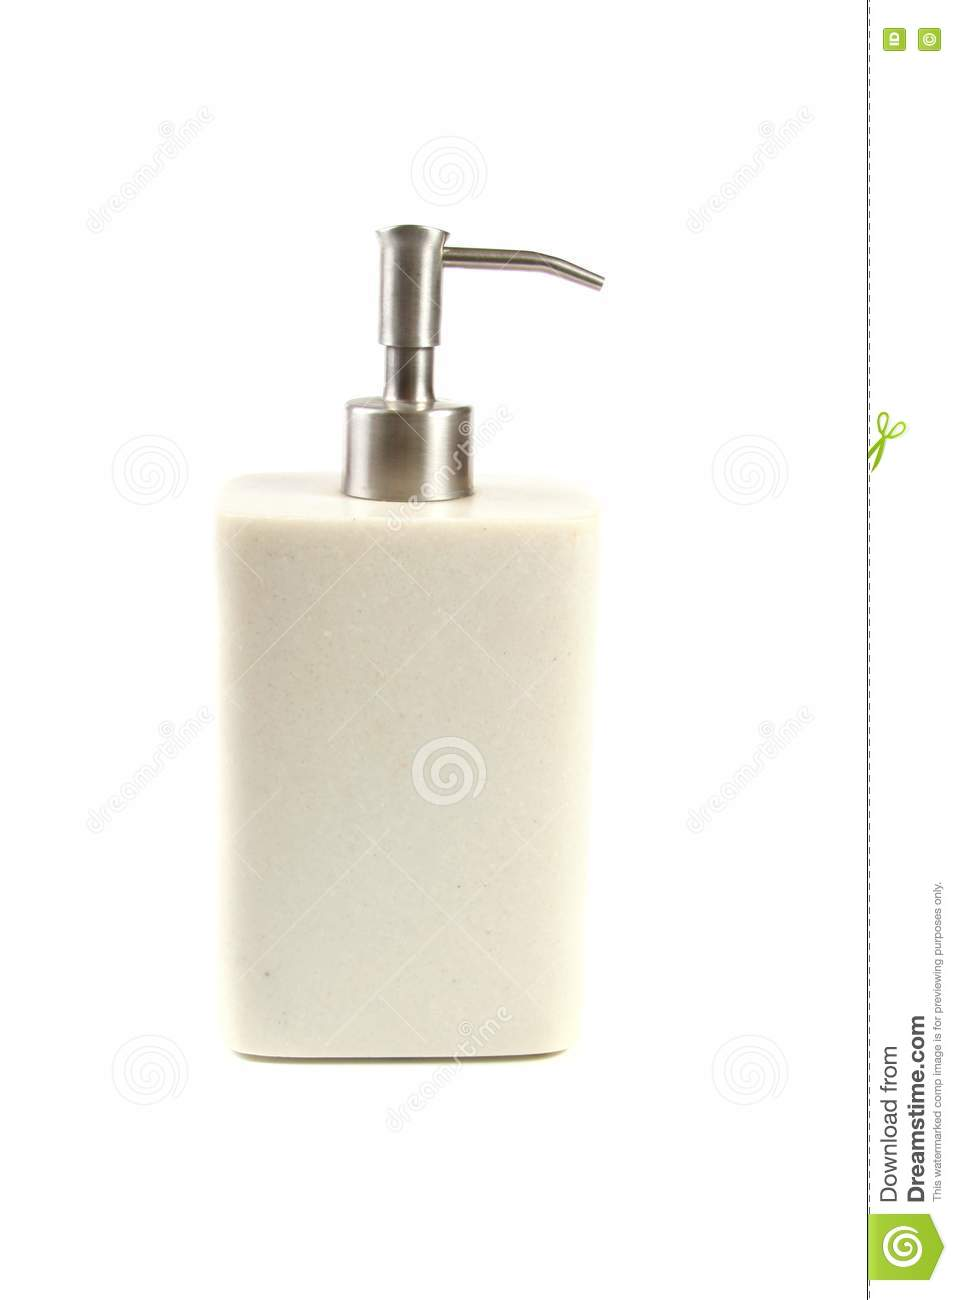 More similar stock images of ` Liquid soap container `